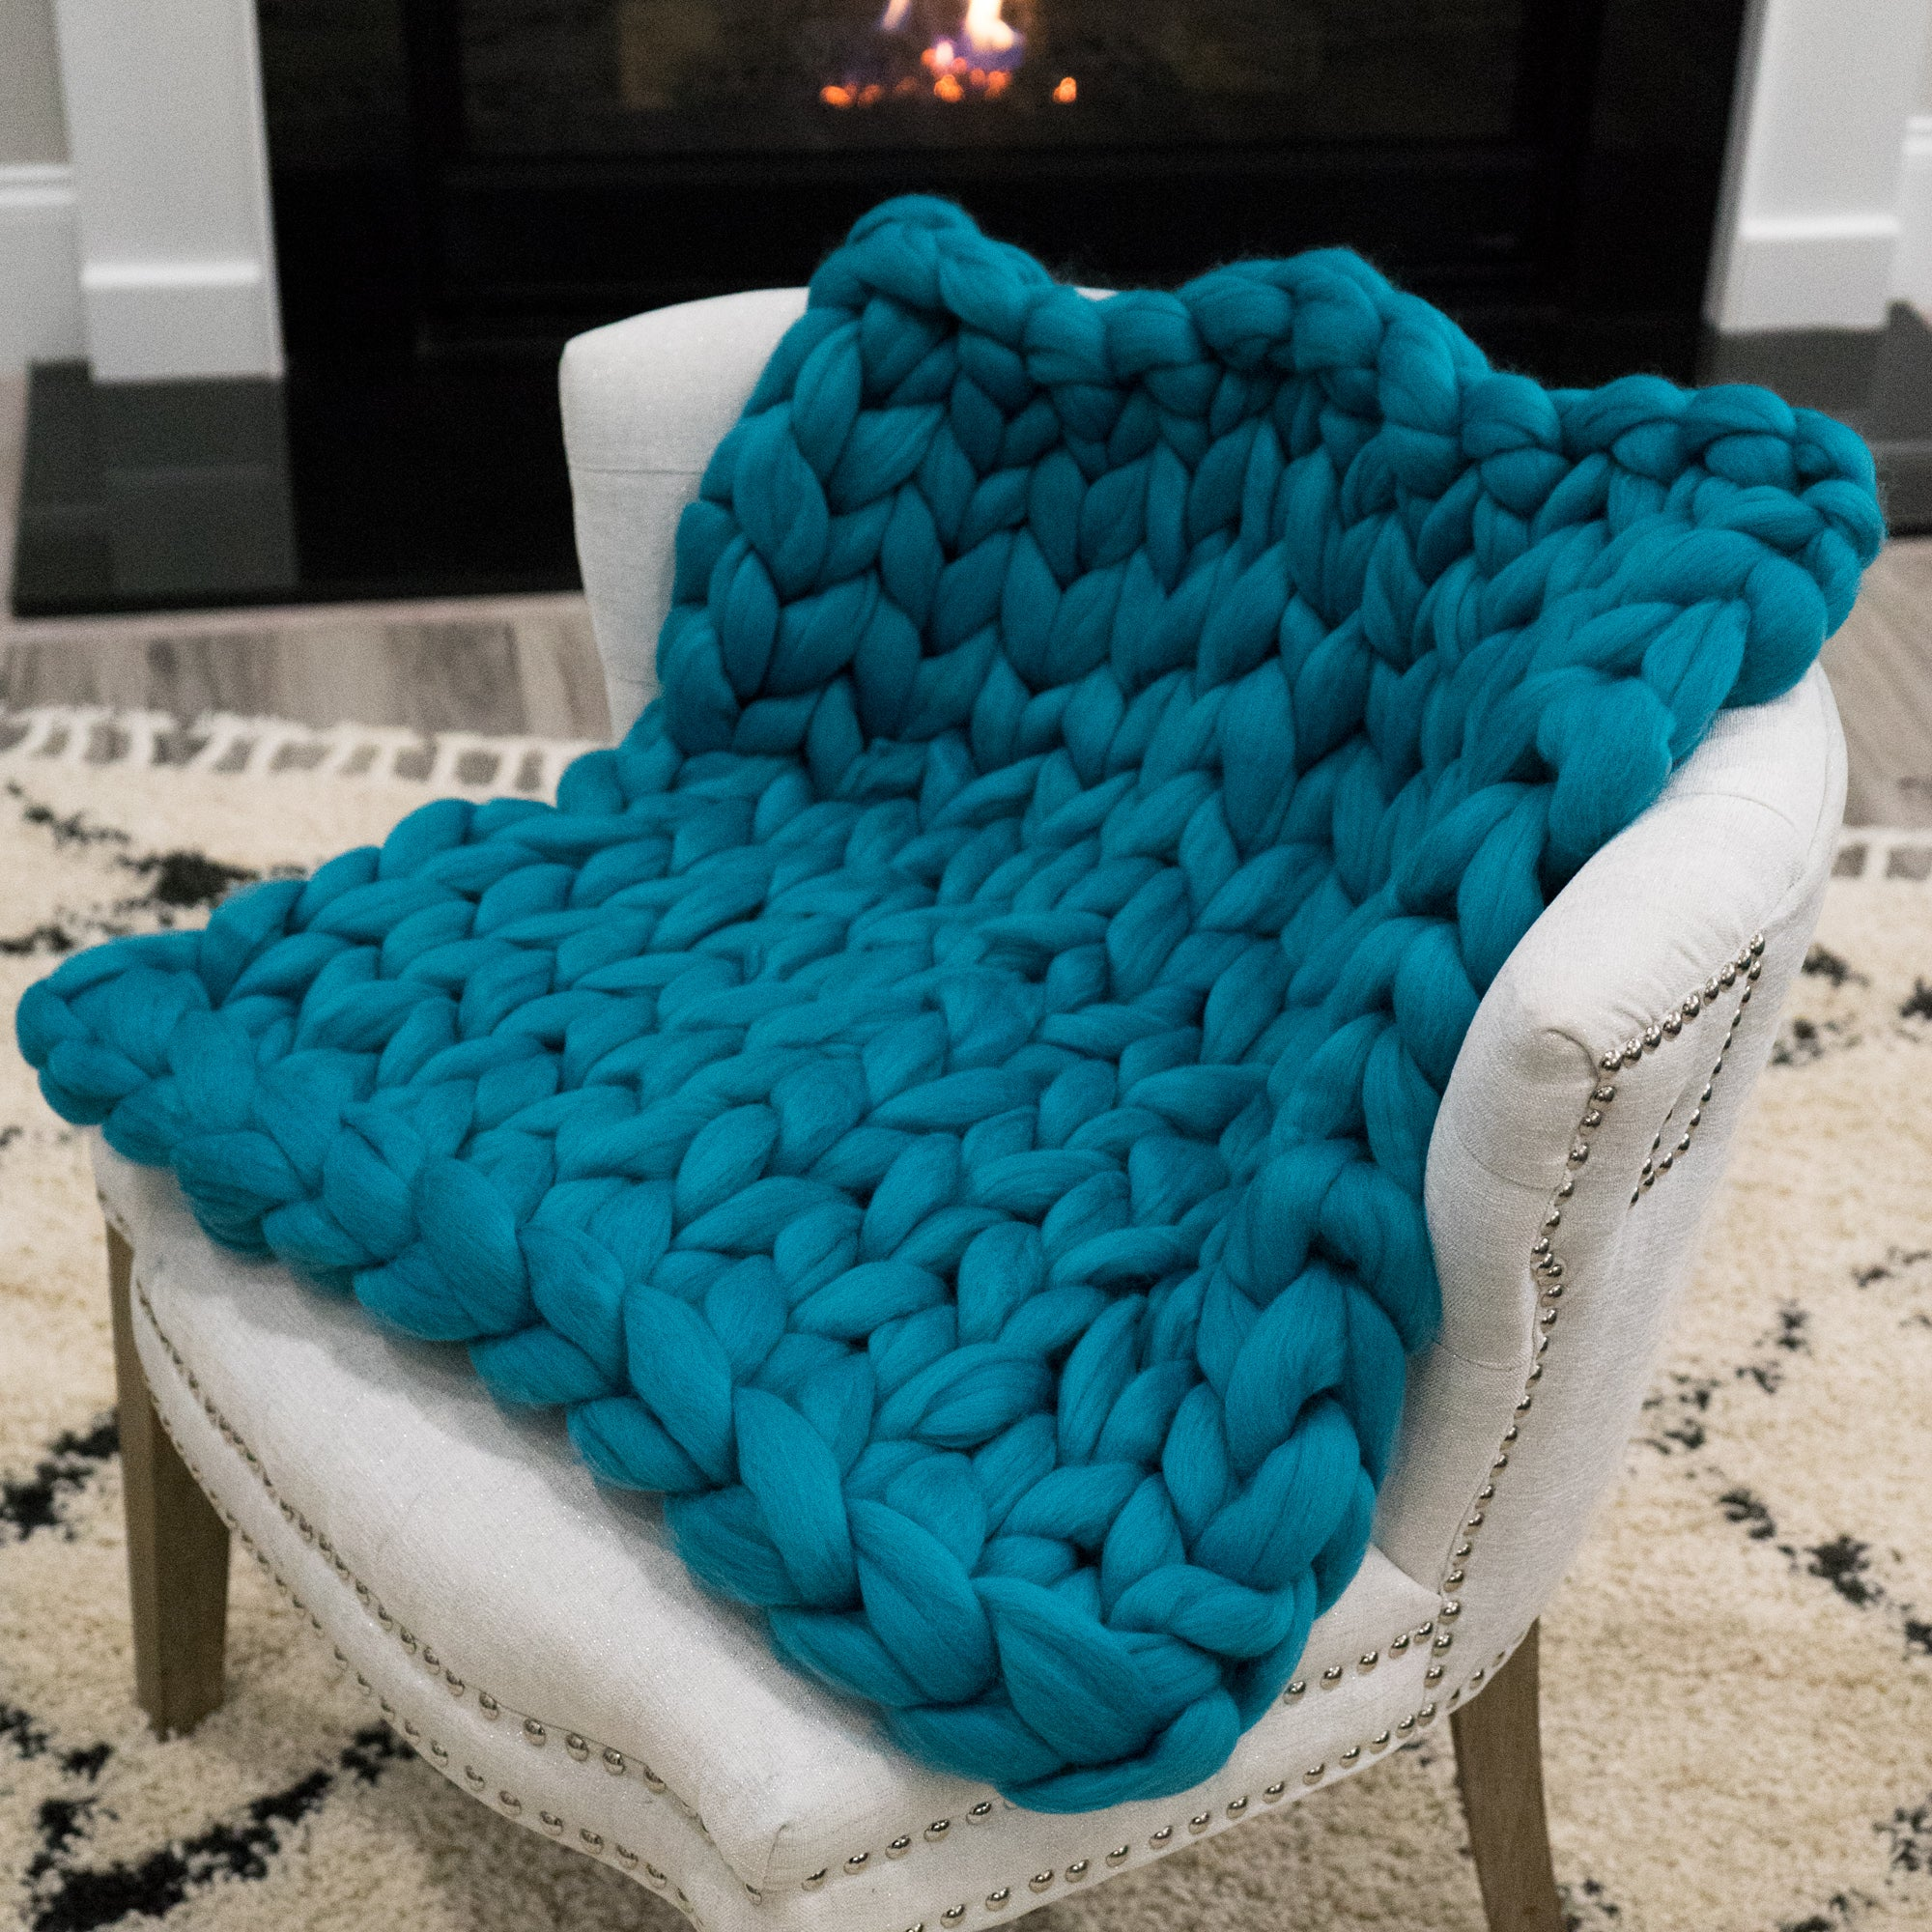 Chunky Knit Throw - Shake Your Tealfeathers (Teal) - 26 inches by 24 inches